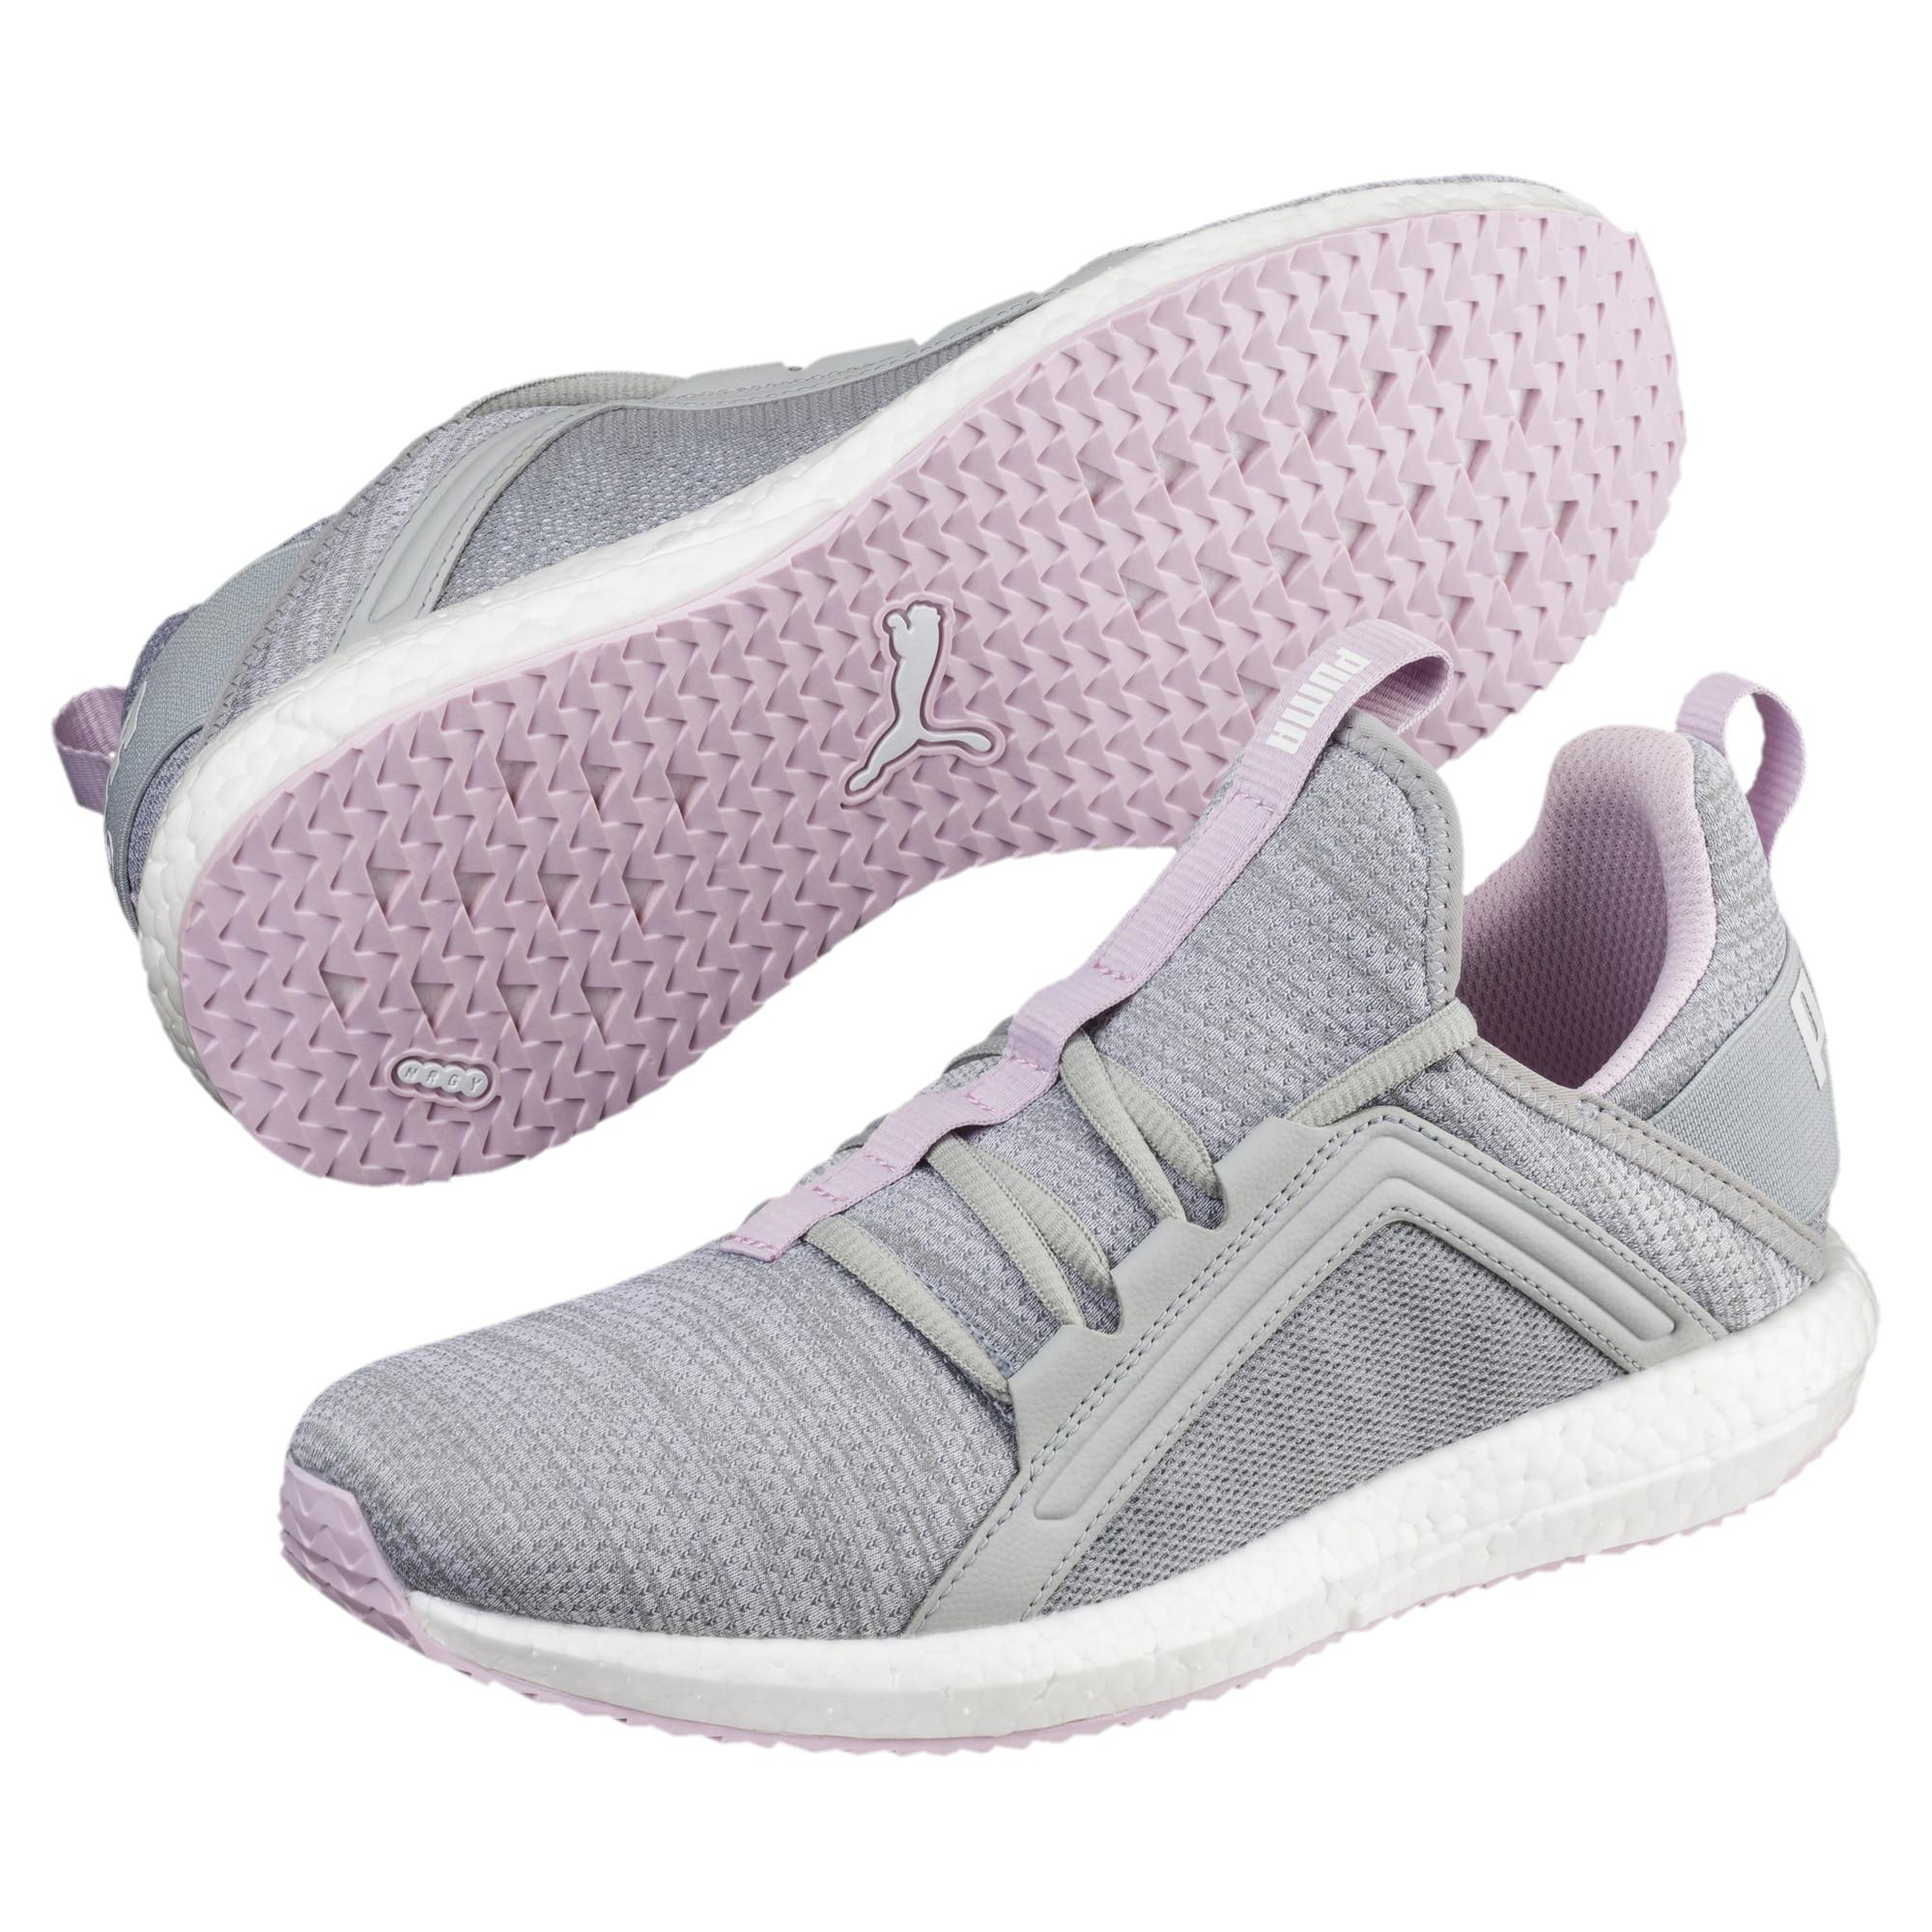 PUMA - Multicolor Mega Nrgy Heather Knit Women s Running Shoes - Lyst. View  fullscreen 02ceac709